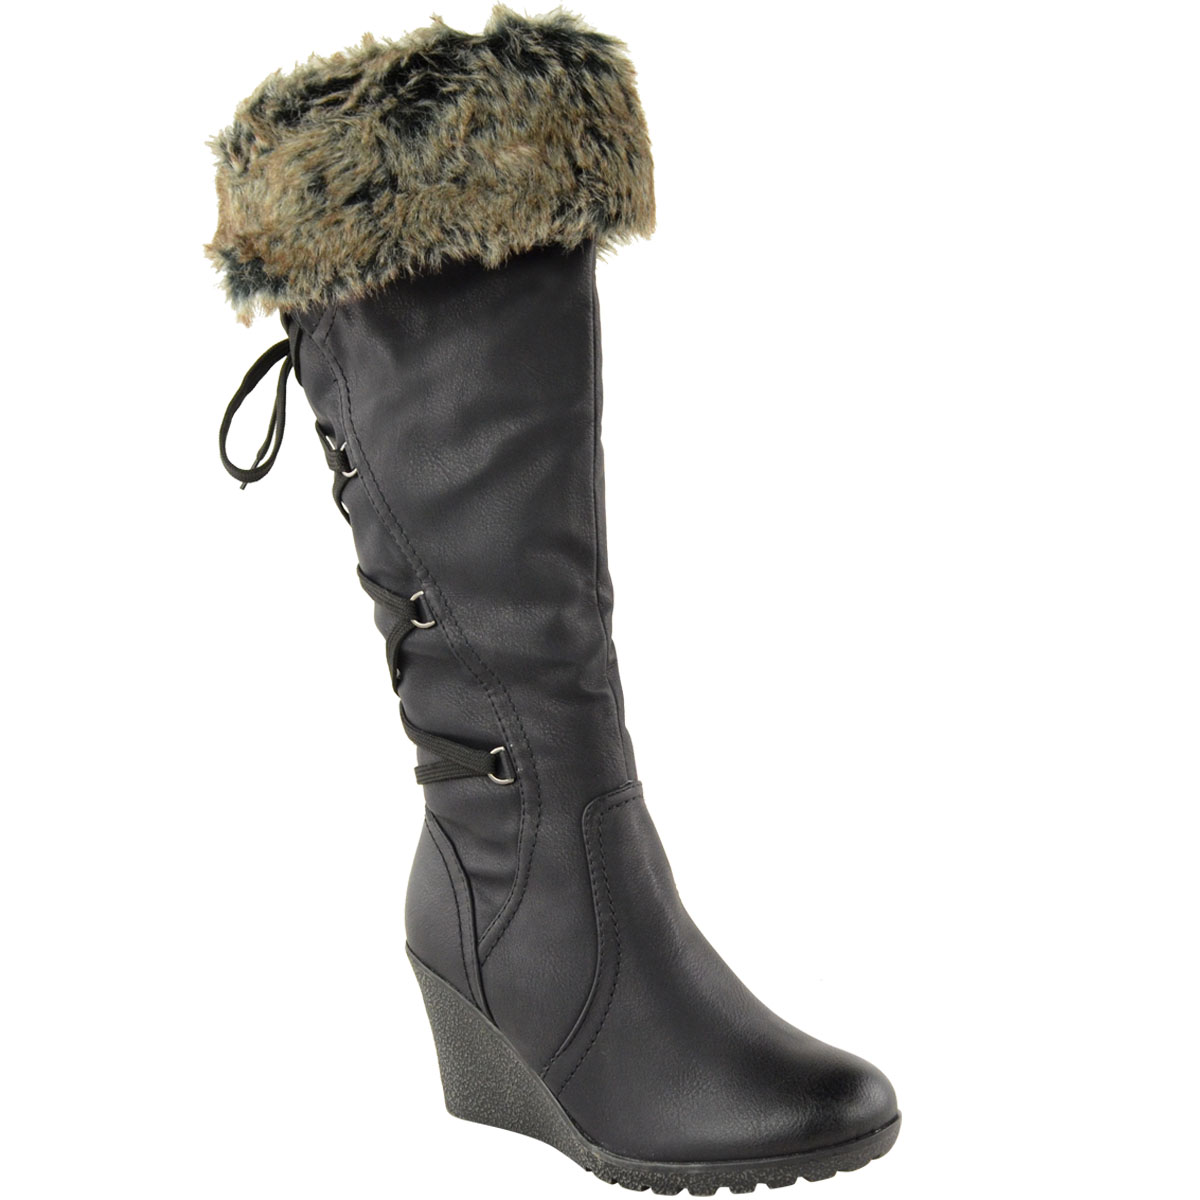 WOMENS-LADIES-MID-WEDGE-HIGH-HEEL-FUR-LINED-WARM-WINTER-KNEE-CALF-ZIP-BOOTS-SIZE thumbnail 3